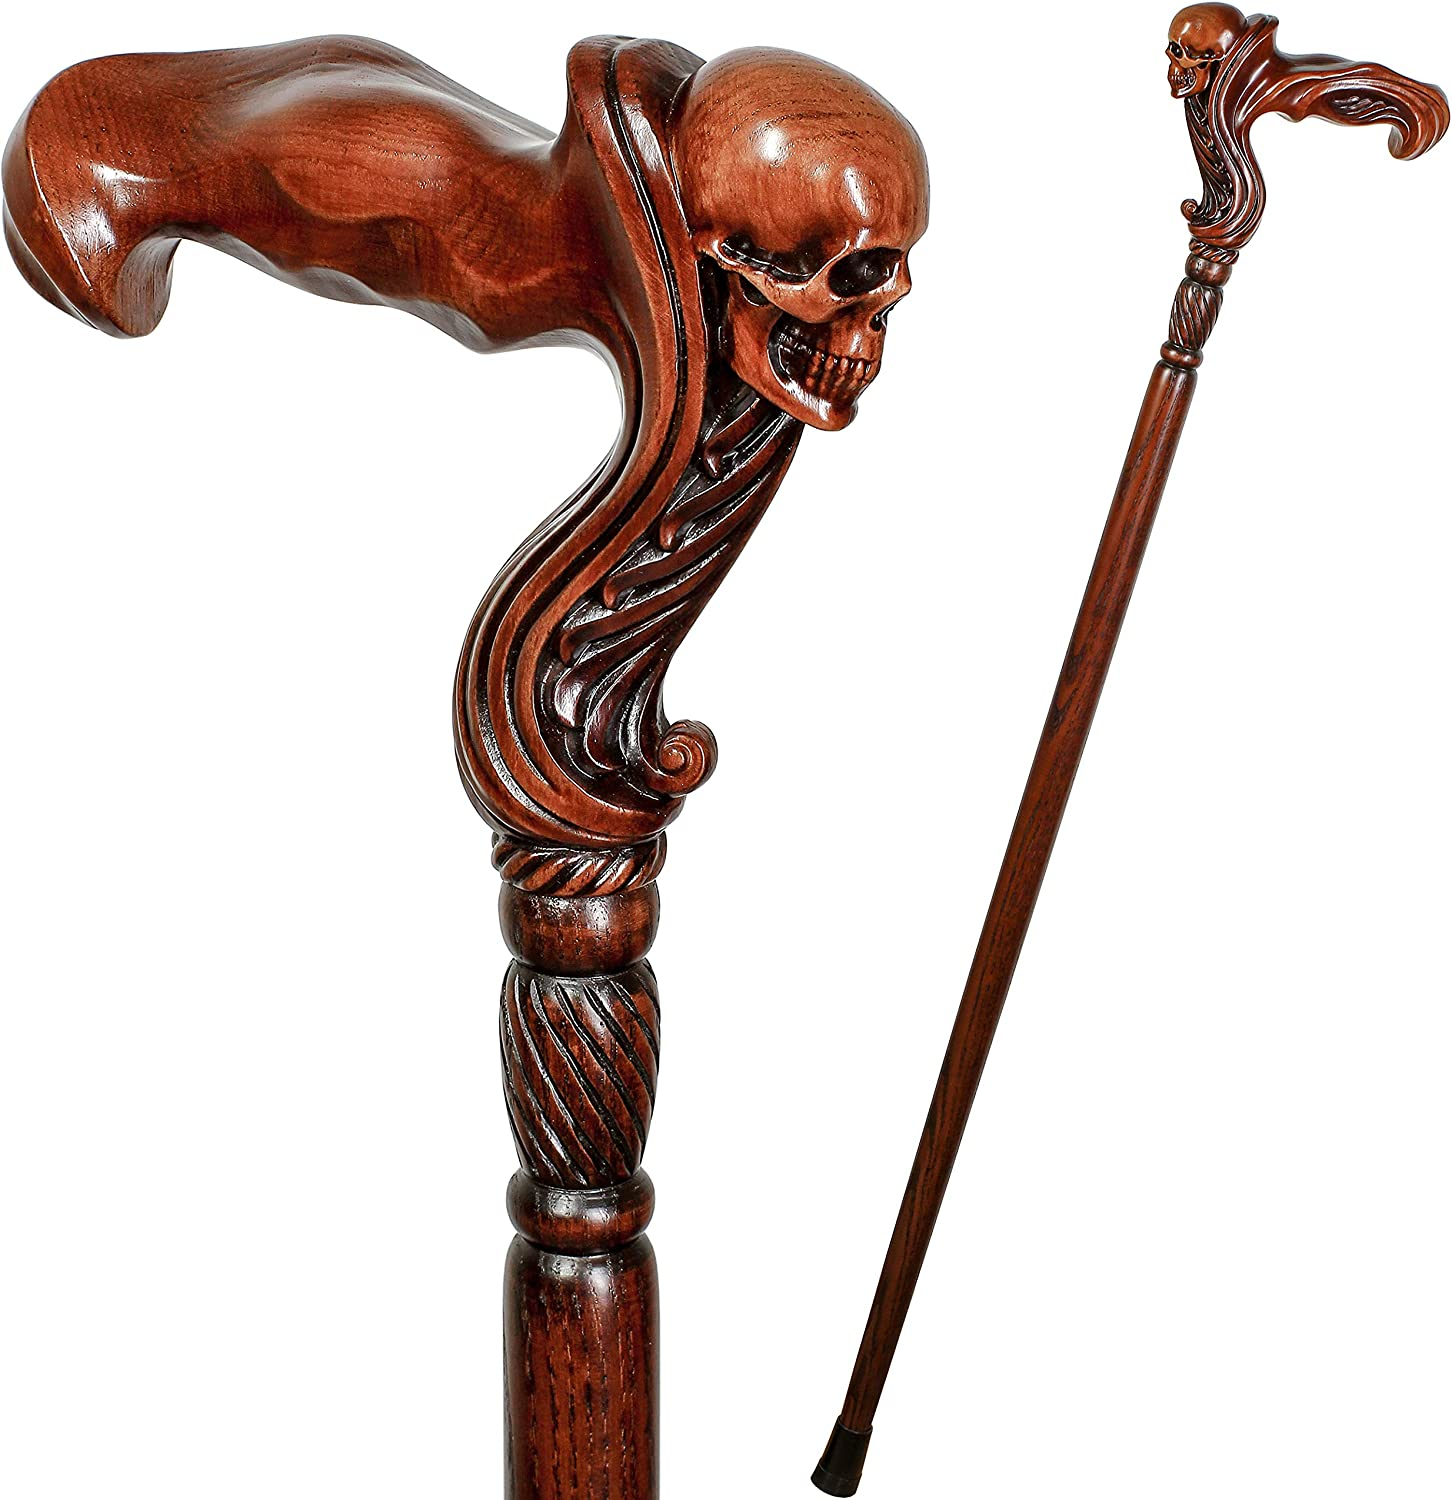 GC-Artis Wooden Walking Max 83% OFF Cane At the price with Palm Grip Head Skull Ergonomic